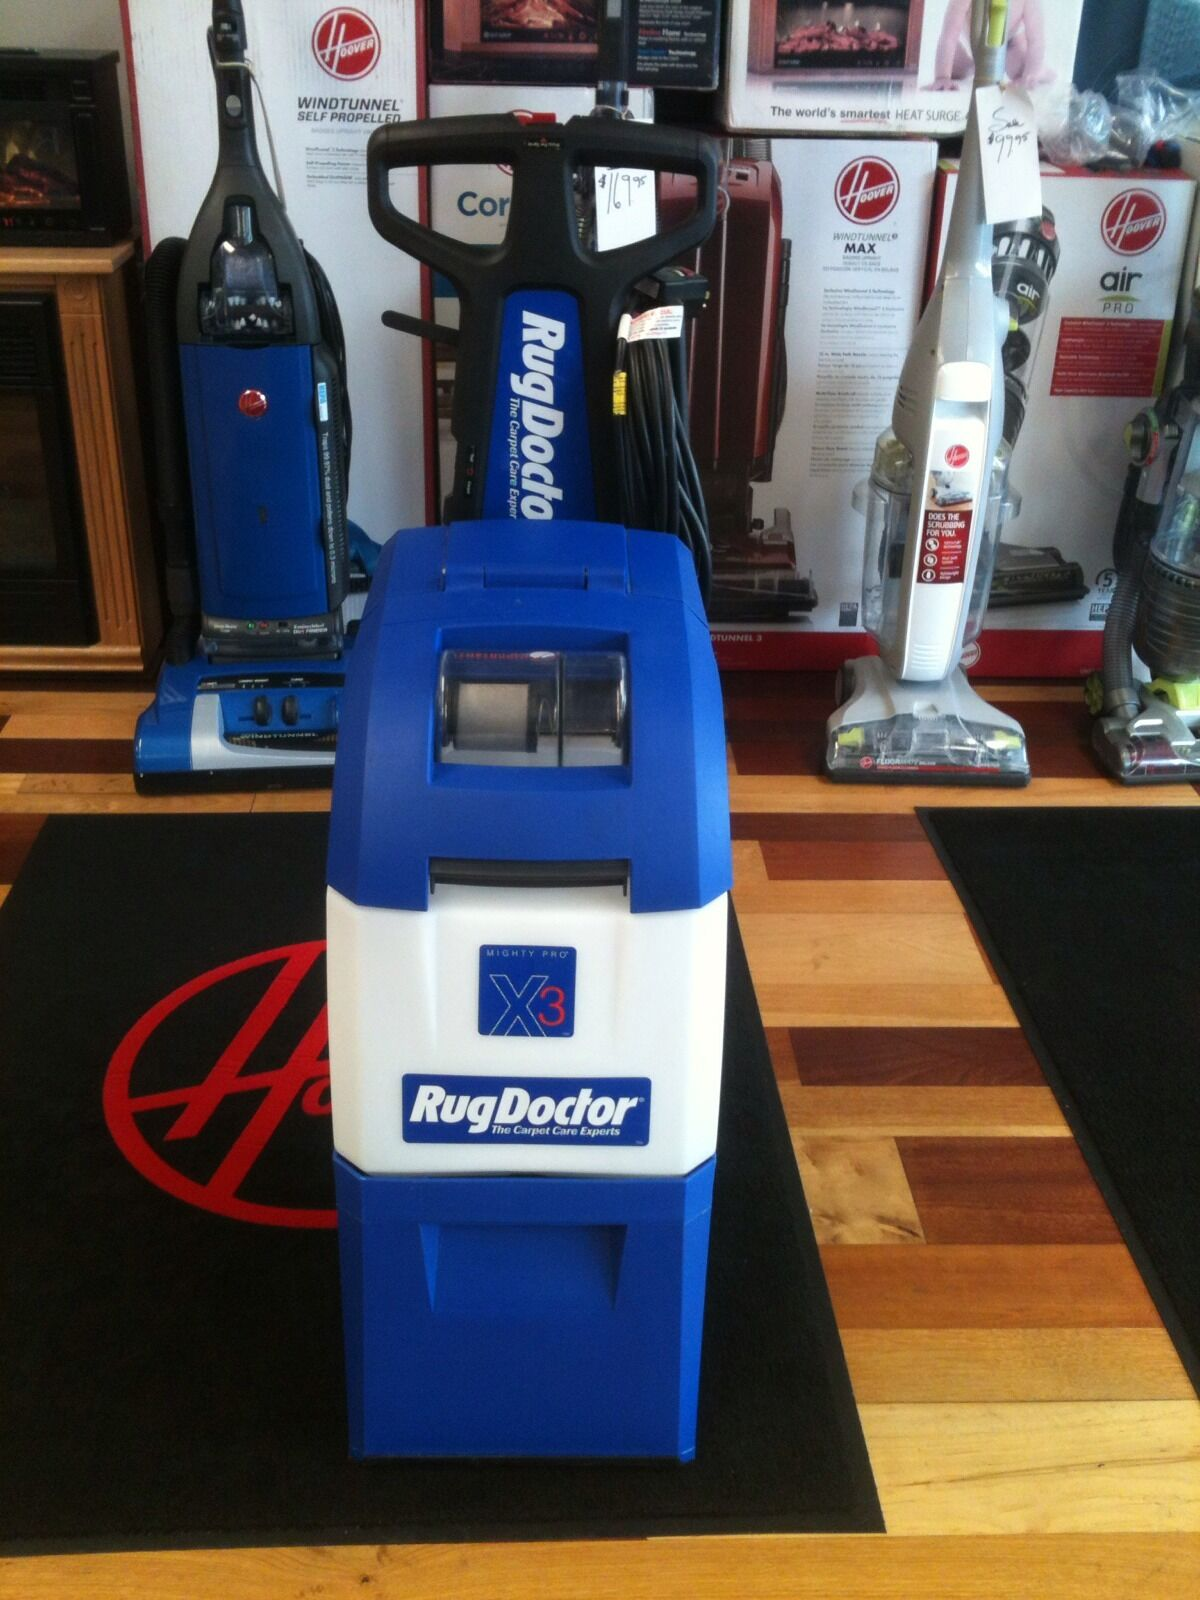 NEW Rug Doctor X3 Mighty Pro Professional Cleaner + Upholste